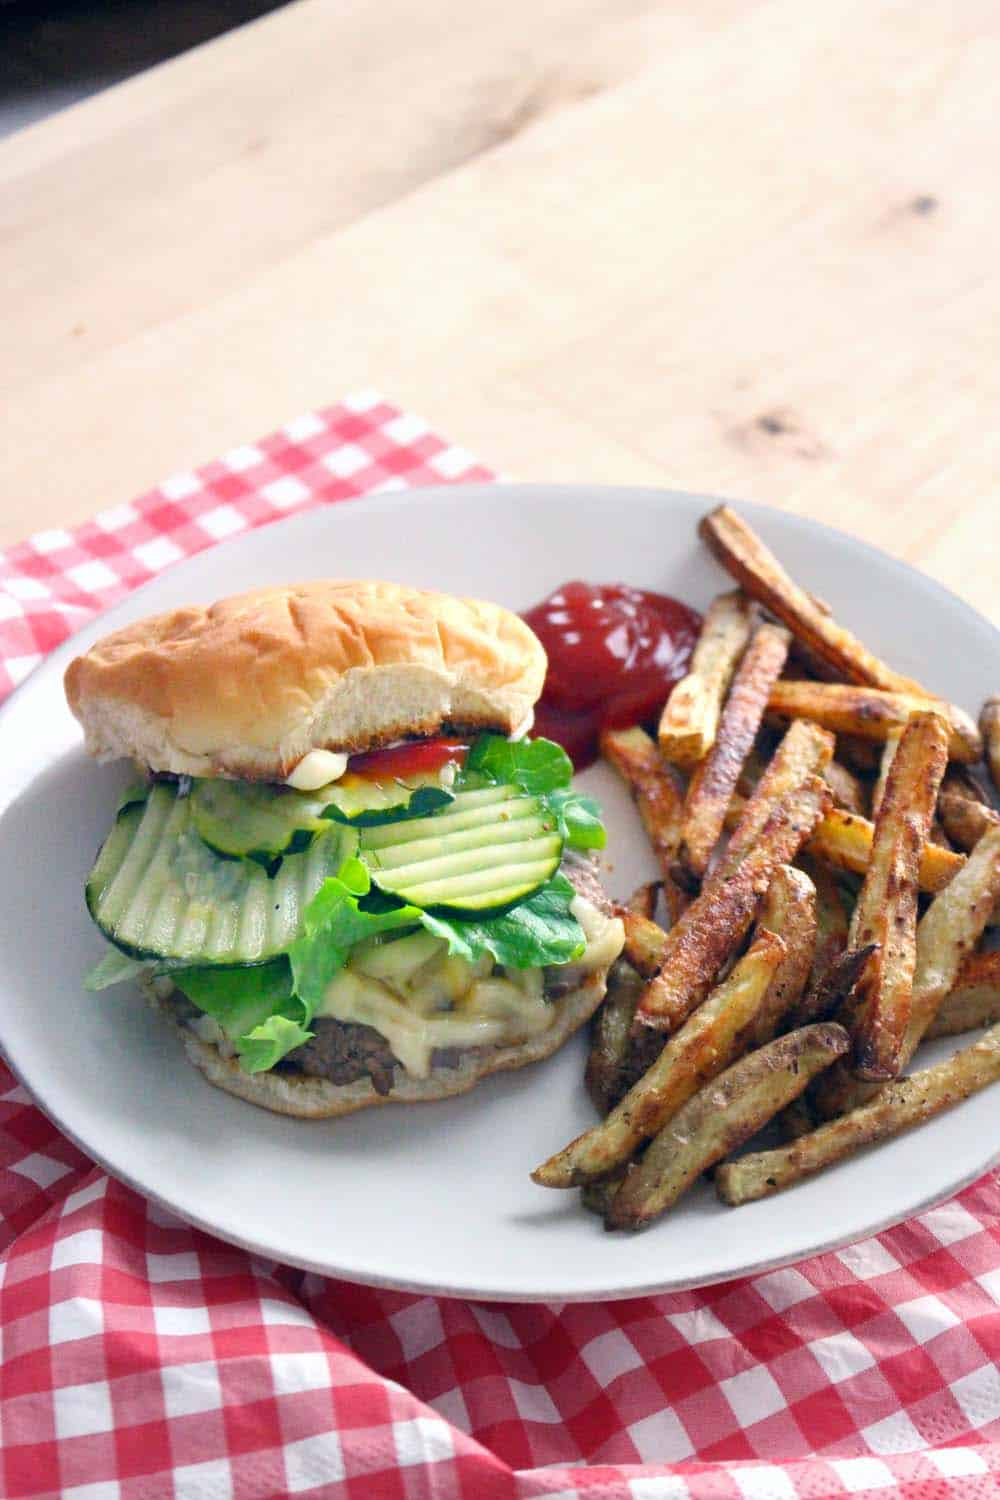 White plate holding cheeseburger with pickles, ketchup, and lettuce, as well as french fries and a dollop of ketchup, all on a red and white checkered cloth, on a wooden table.